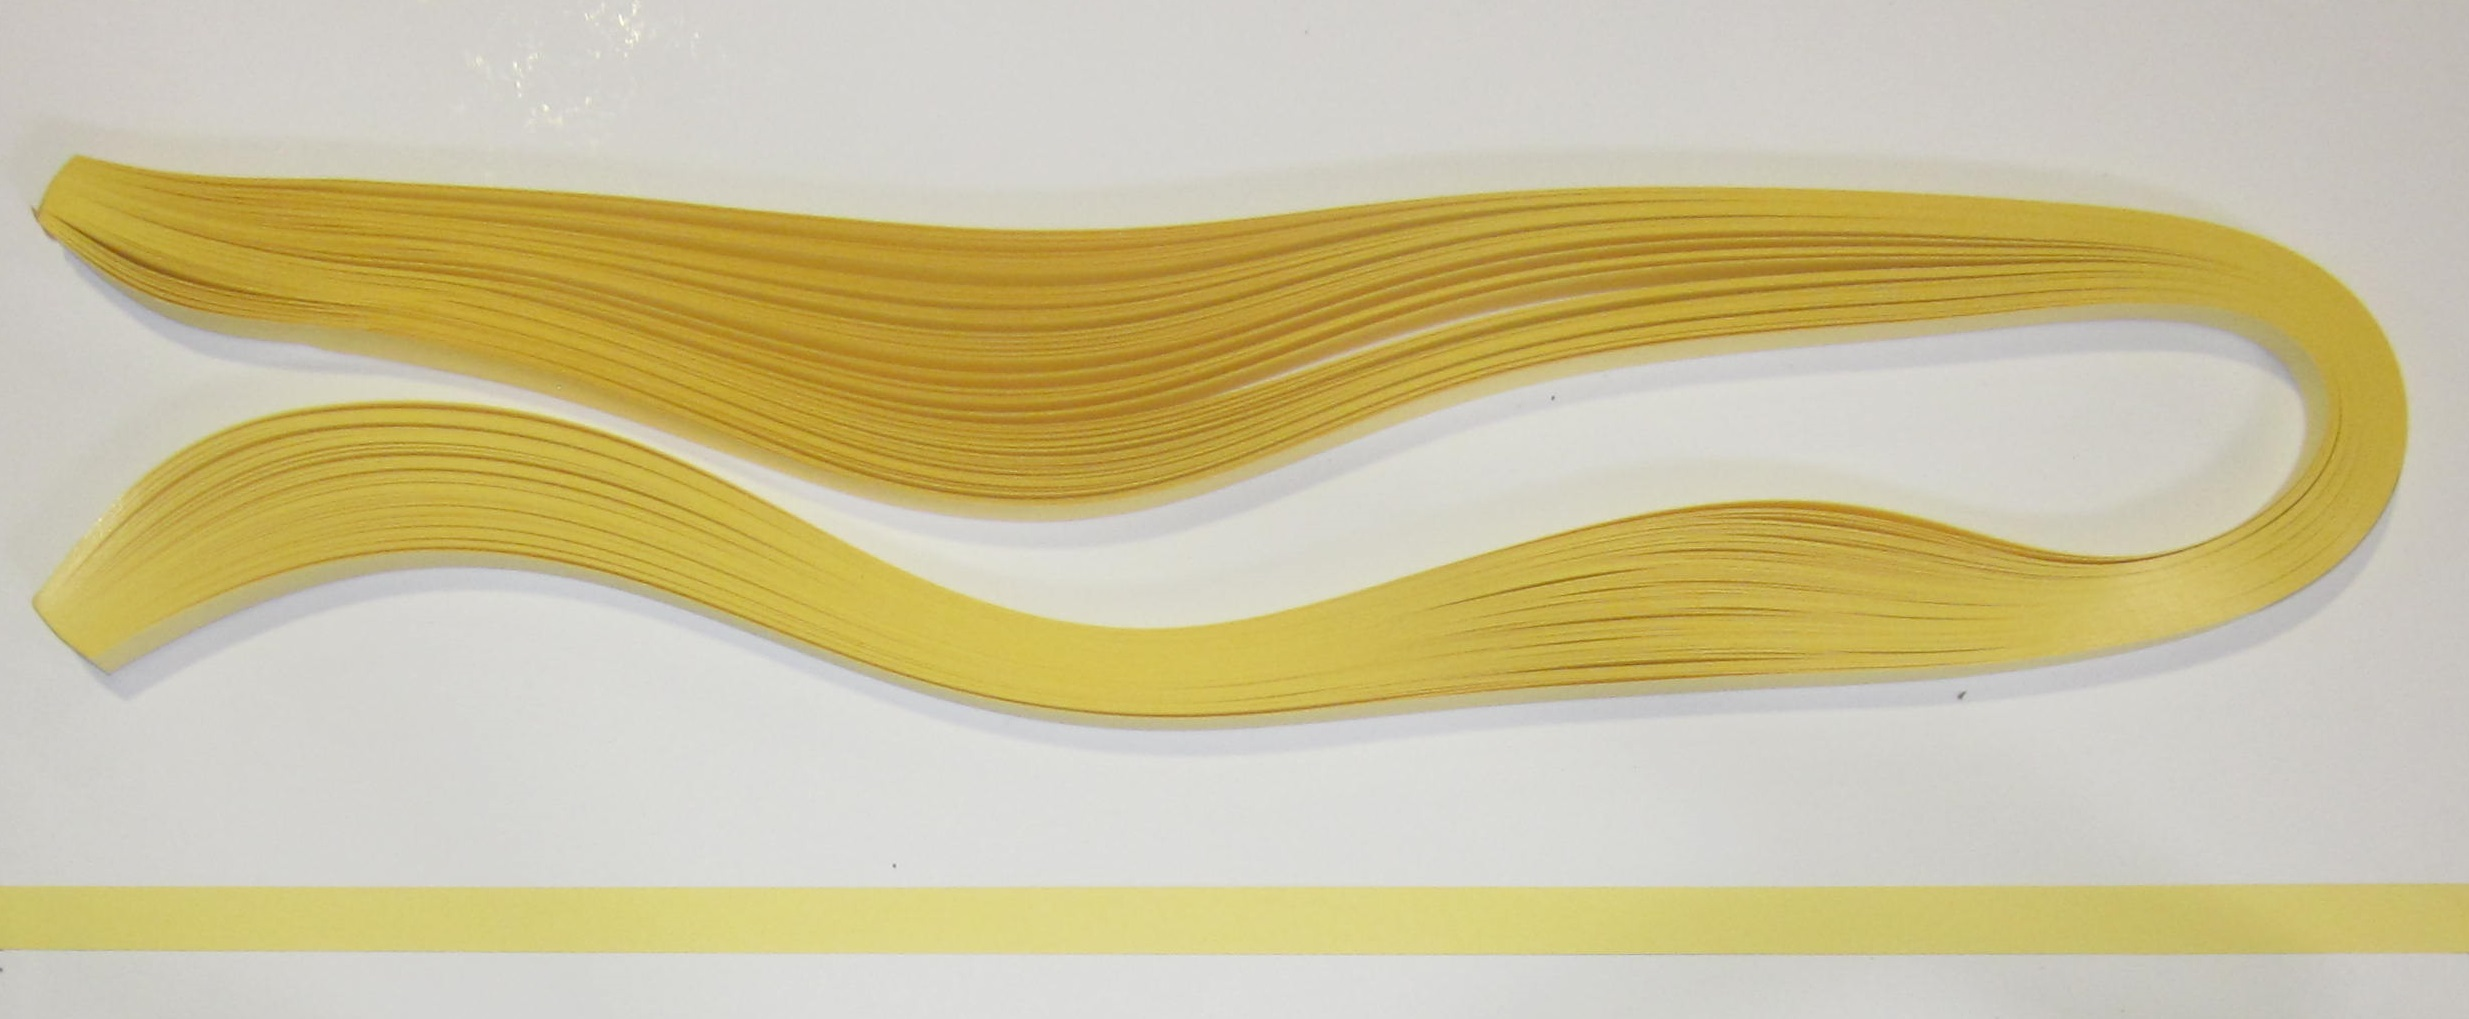 PAPEL QUILLING 322, 3MM. AMARILLO CREMA